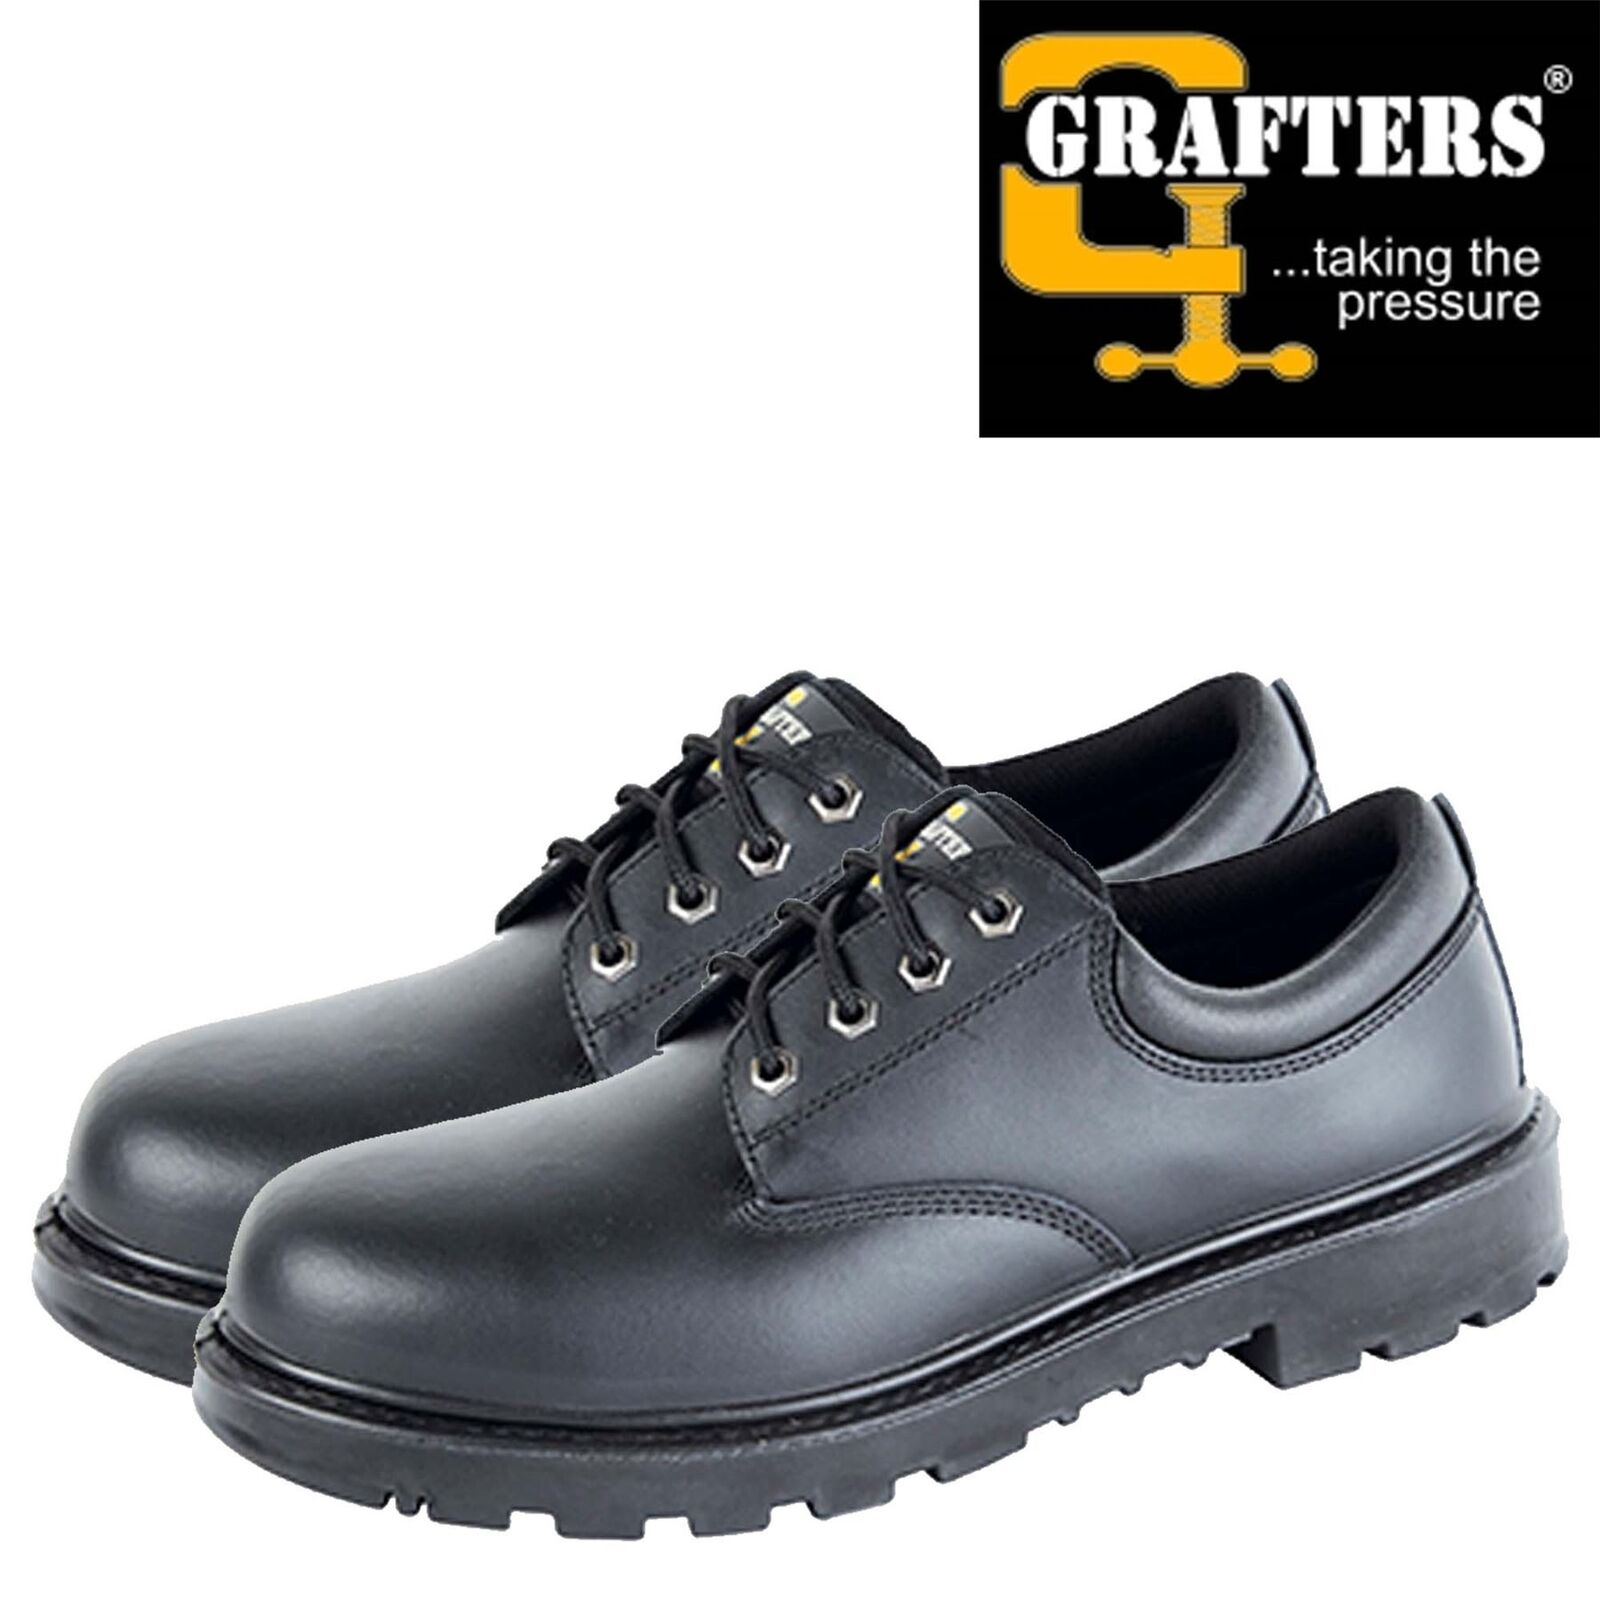 Grafters Mens Safety shoes Steel Toe Cap Work Trainer Black